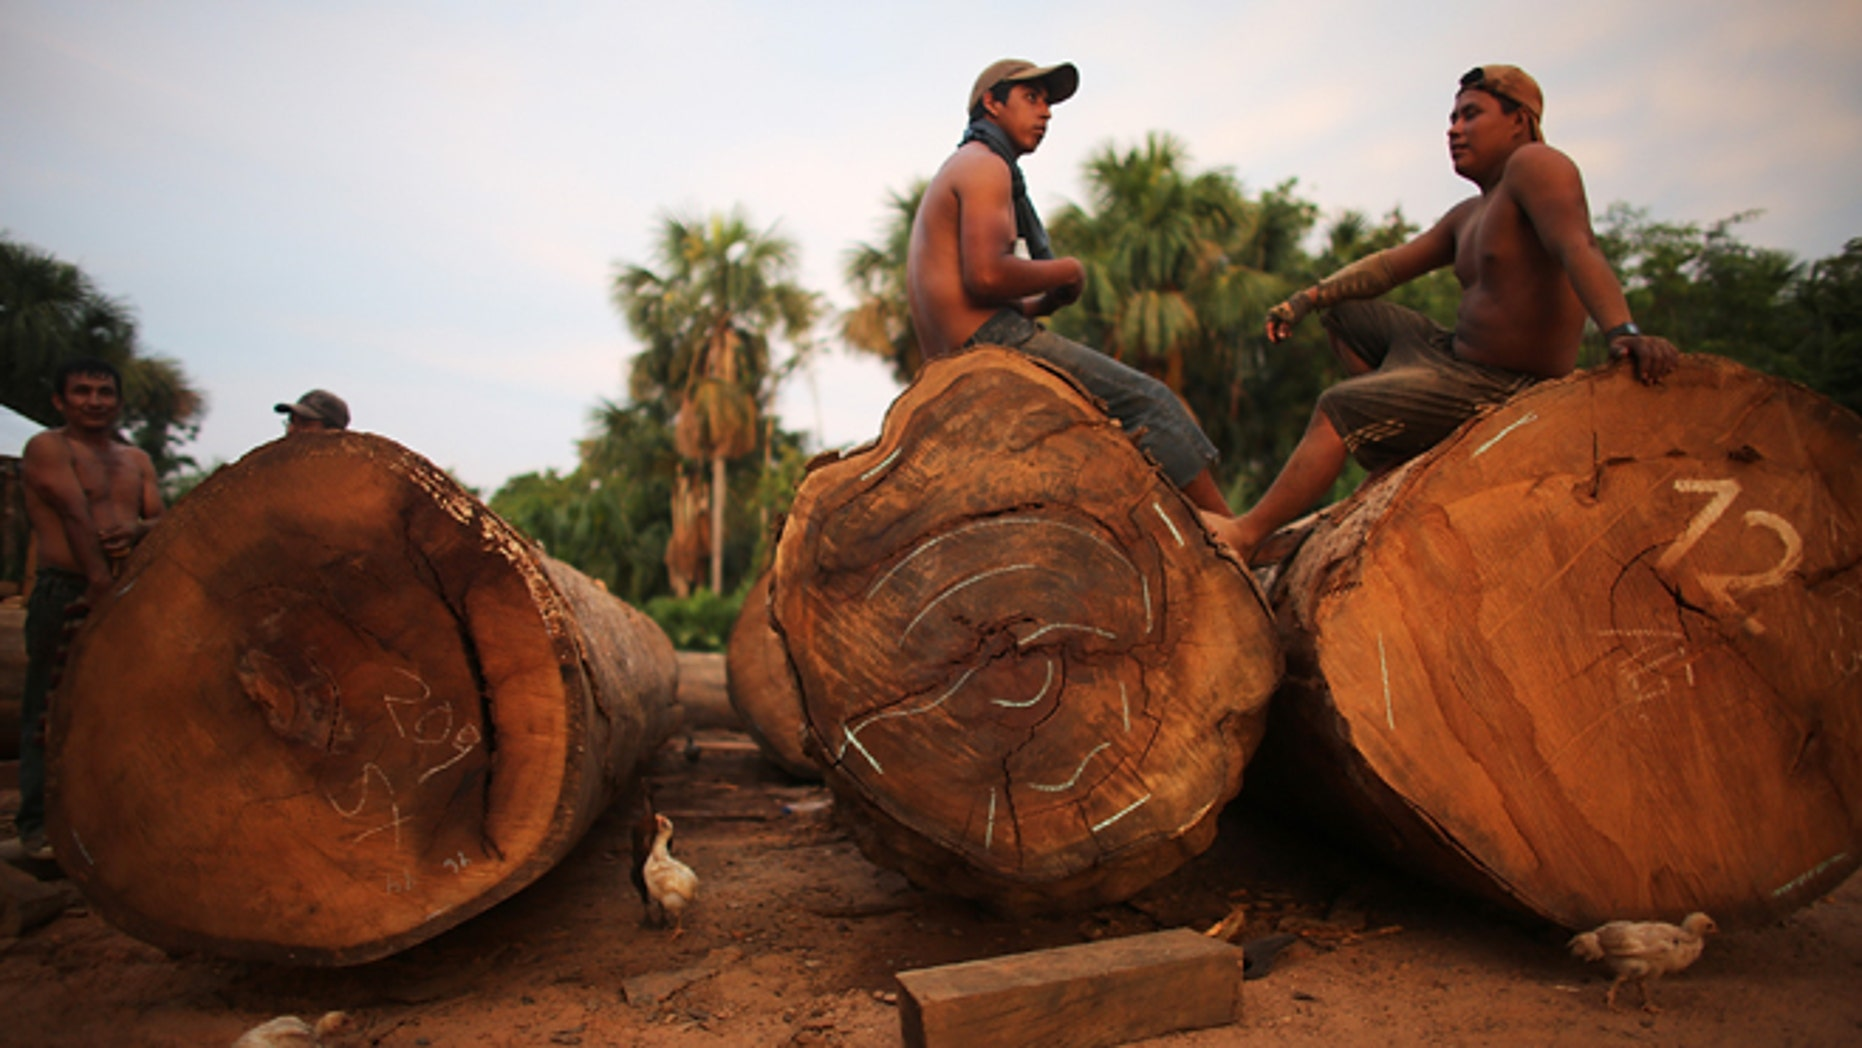 MADRE DE DIOS REGION, PERU - NOVEMBER 16:  Loggers sit on felled trees in a deforested section along the Interoceanic Highway in the Amazon lowlands on November 16, 2013 in Madre de Dios region, Peru. The biologically diverse Madre de Dios ('Mother of God') region has seen deforestation from gold mining in the area triple since 2008, when gold prices spiked during global economic turmoil. In addition, deforestation along the recently constructed highway has occurred due to logging and farming as the highway has opened access to previously remote areas. (Photo by Mario Tama/Getty Images)